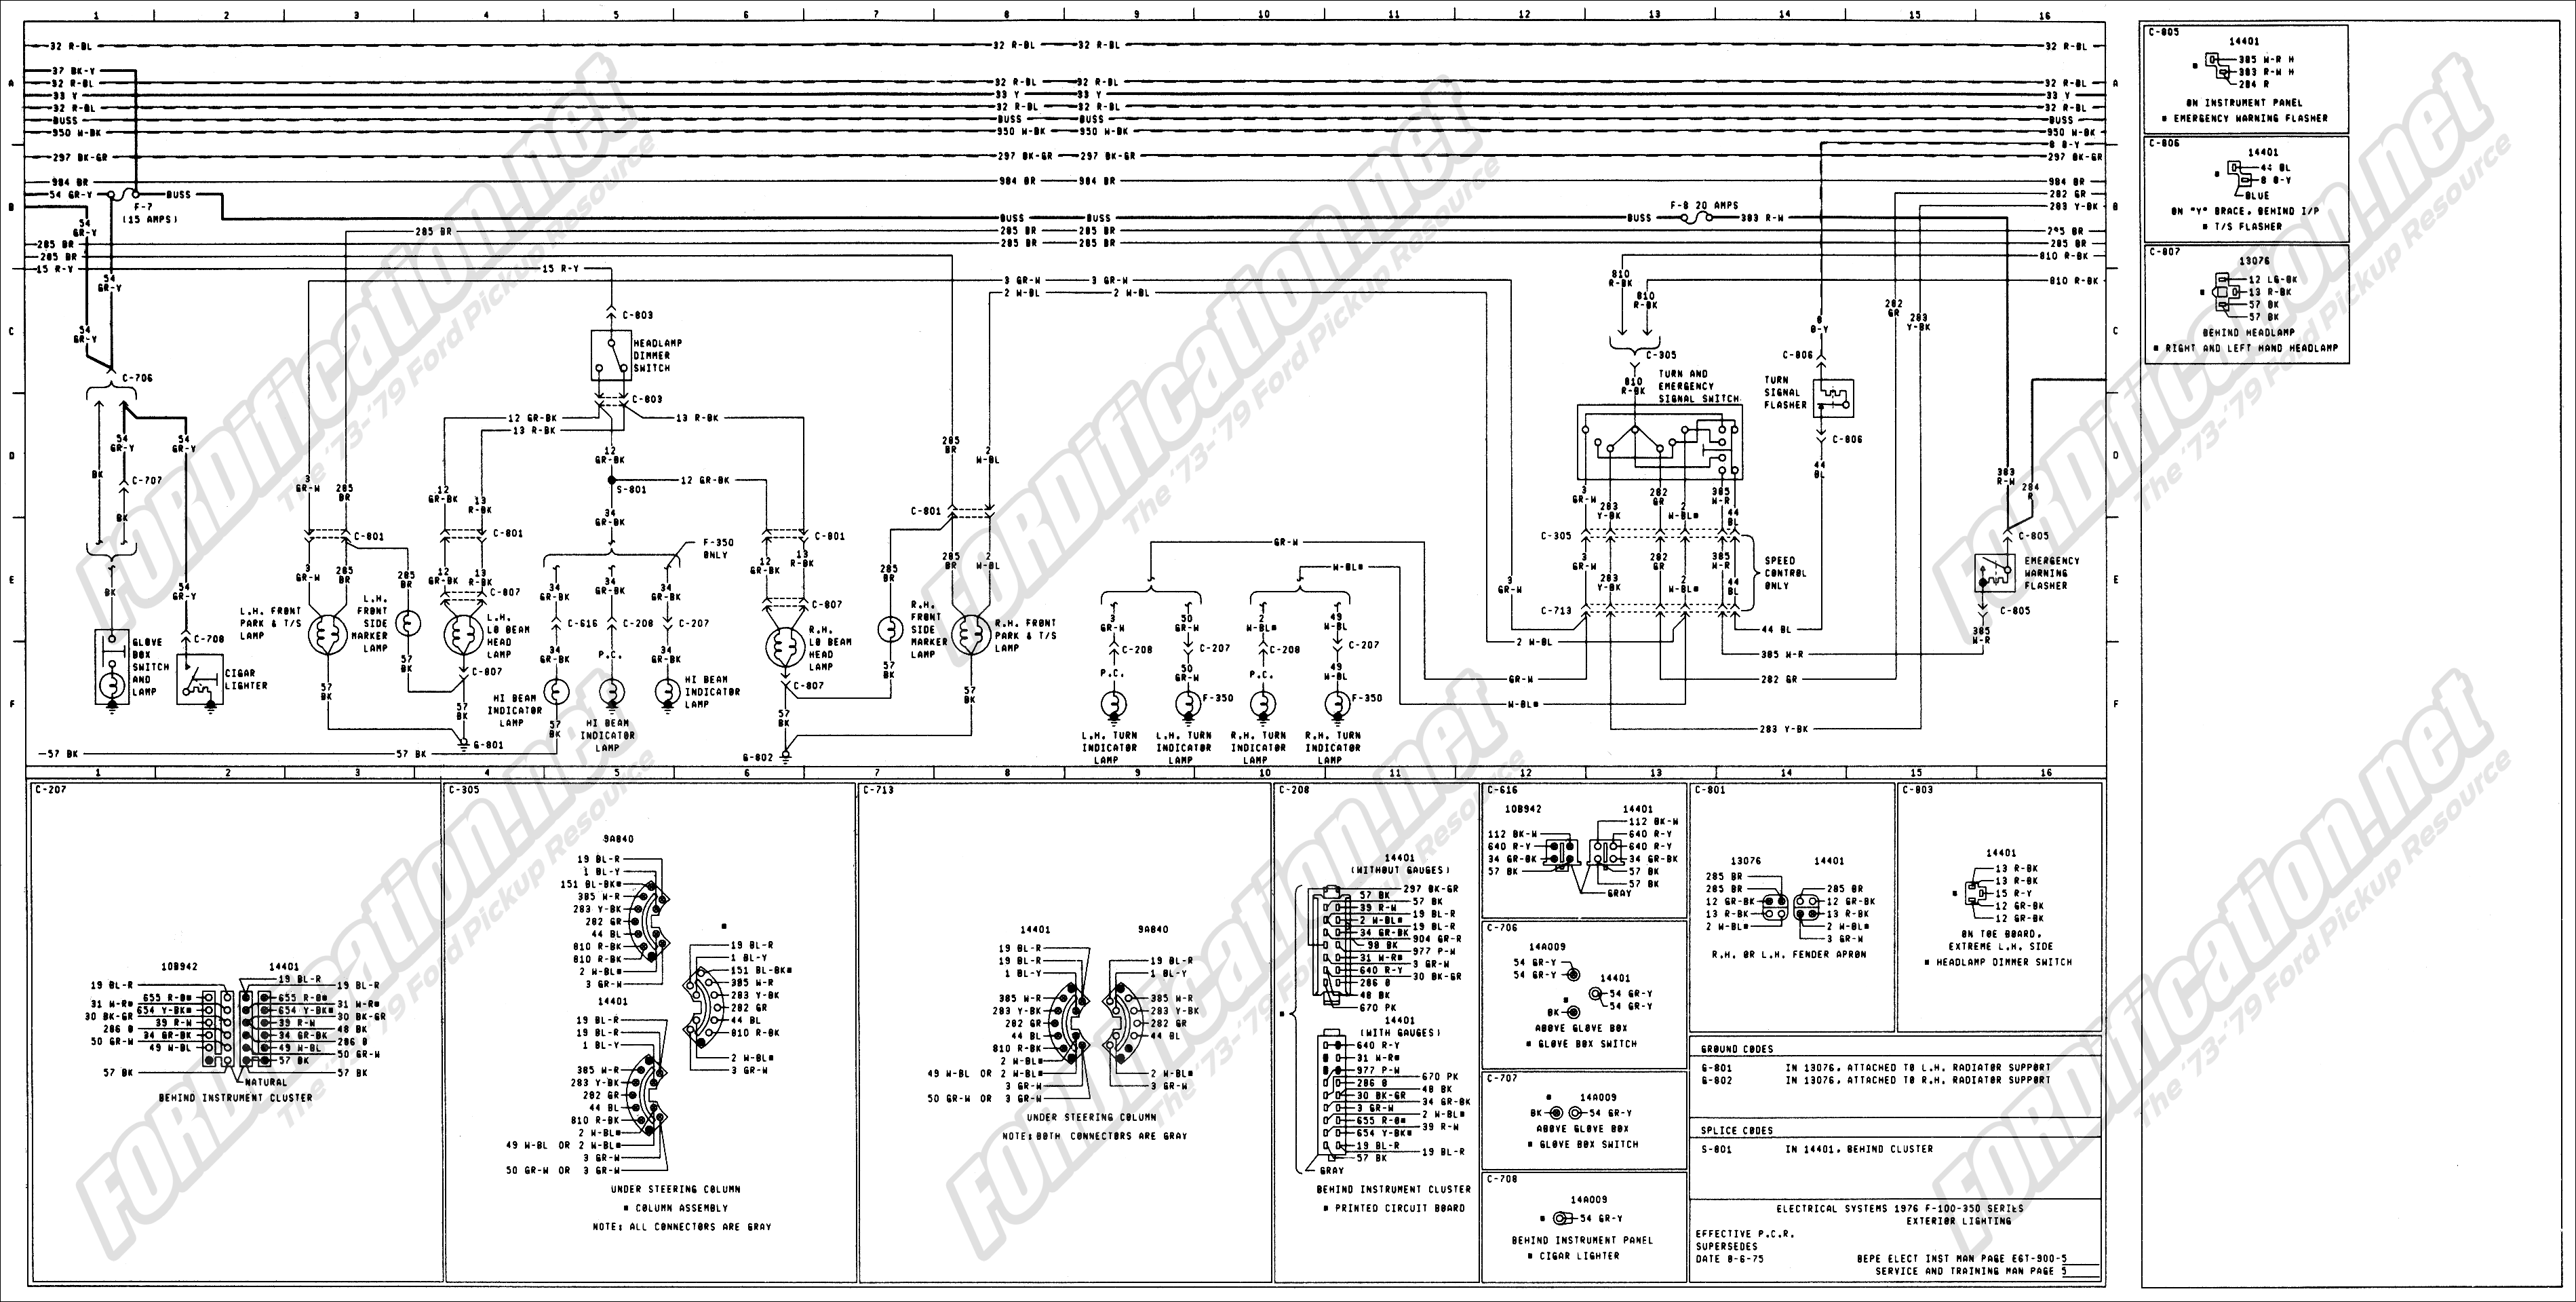 Ford Trailer Wiring Code Great Installation Of Diagram 2000 F150 For 7 Way 1973 1979 Truck Diagrams Schematics Fordification Net Rh Plug